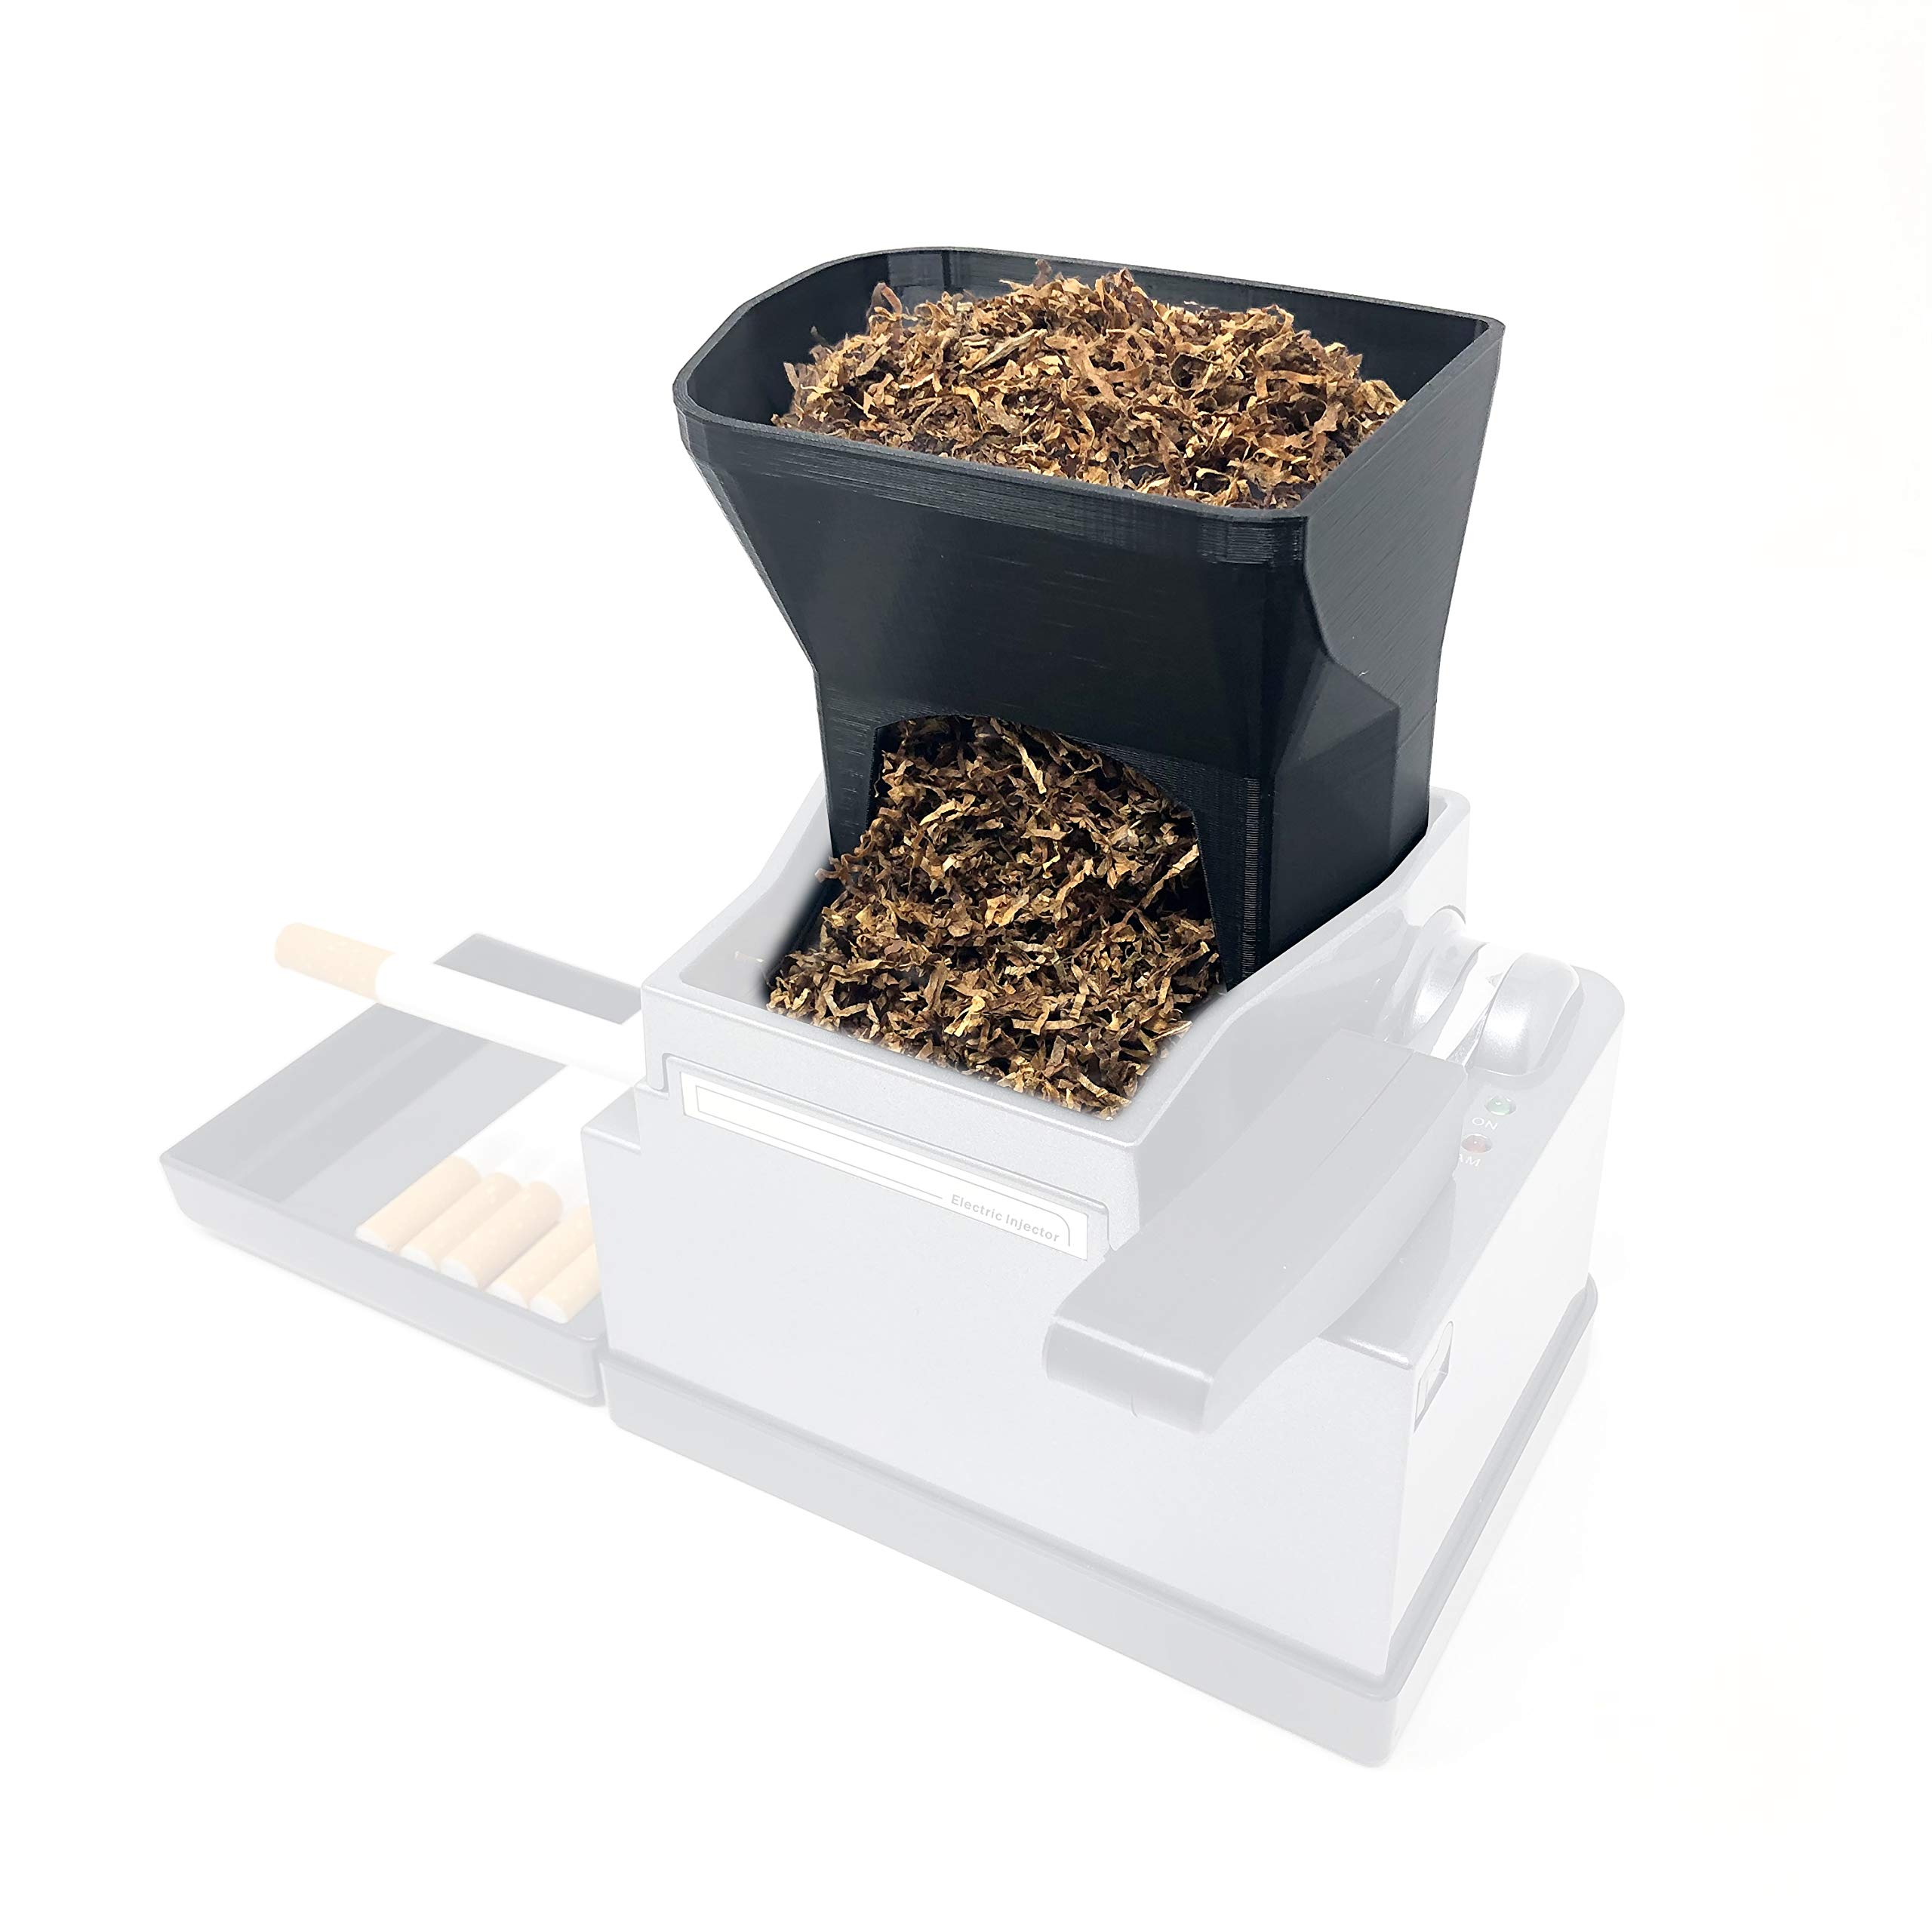 Ergo 3D Tobacco Hopper Accessory for Powermatic 2 & 2+ Electric Cigarette Rolling Machine Injector for Hand Rolled Smokes. Includes The Ergo 3D Hopper ONLY! (Powermatic Machine Sold Separately!)